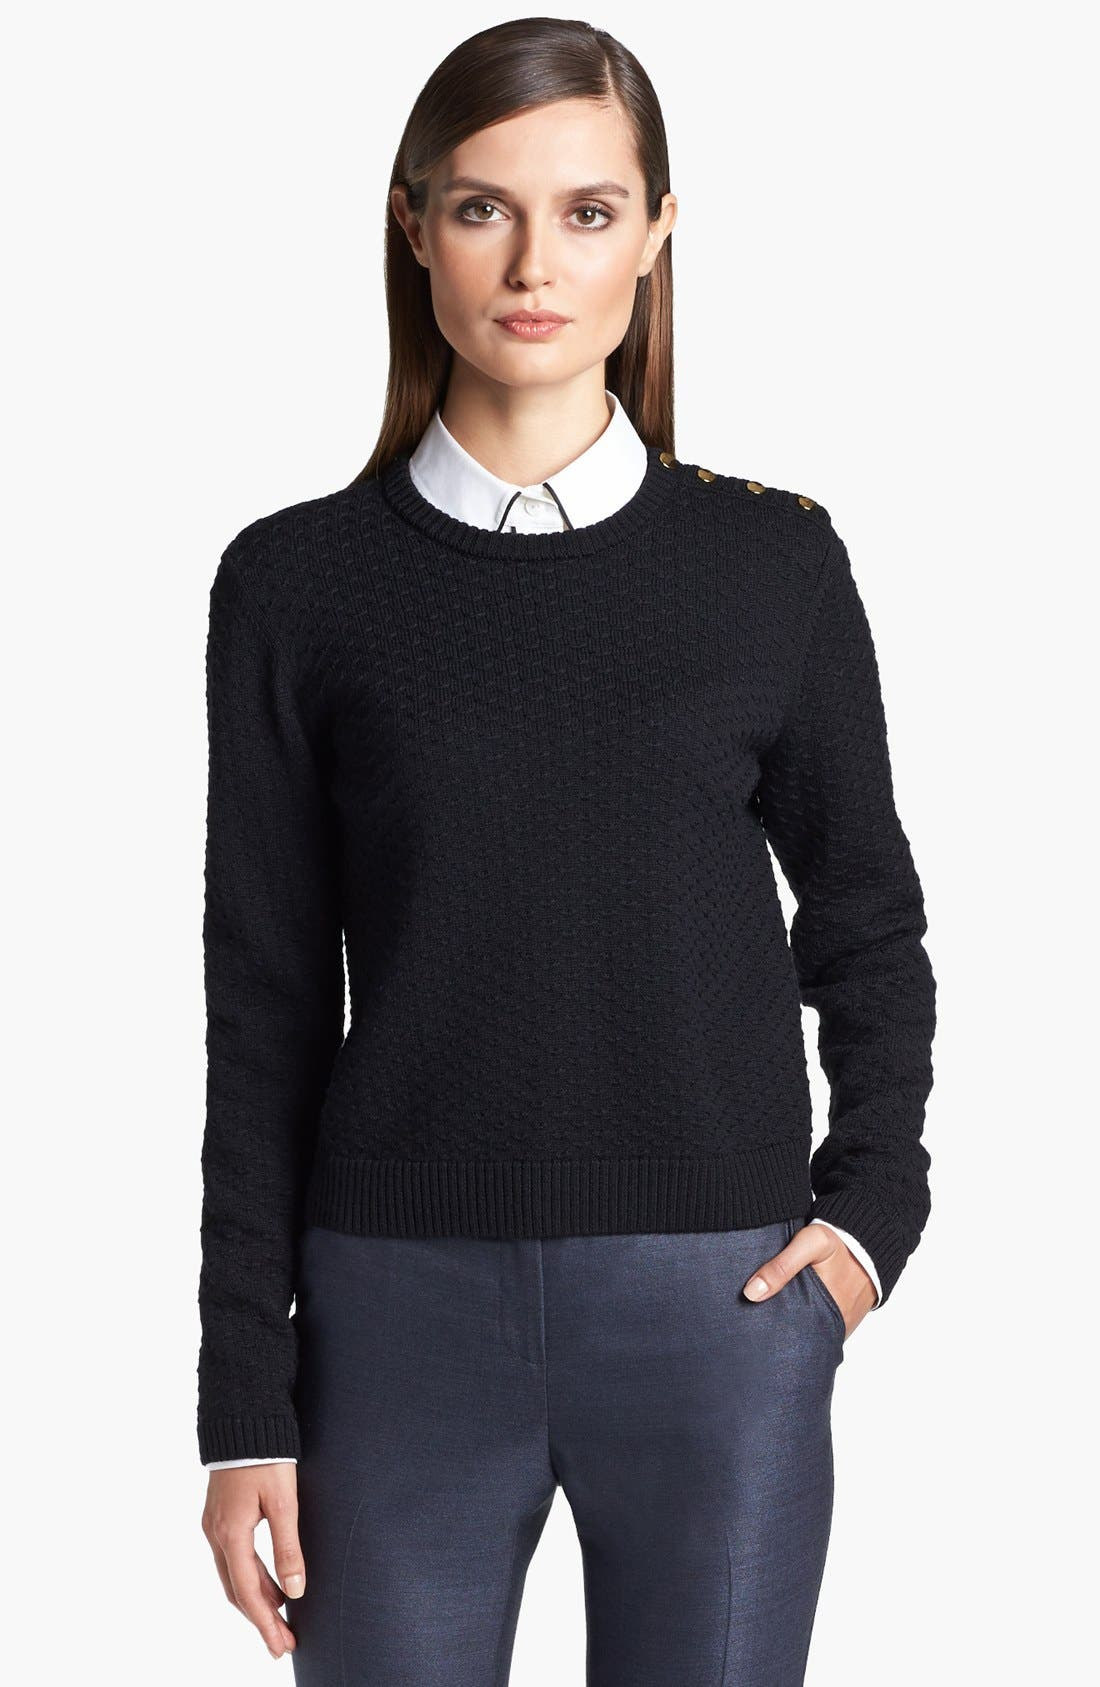 Main Image - St. John Yellow Label Shoulder Snap Eyelet Knit Sweater